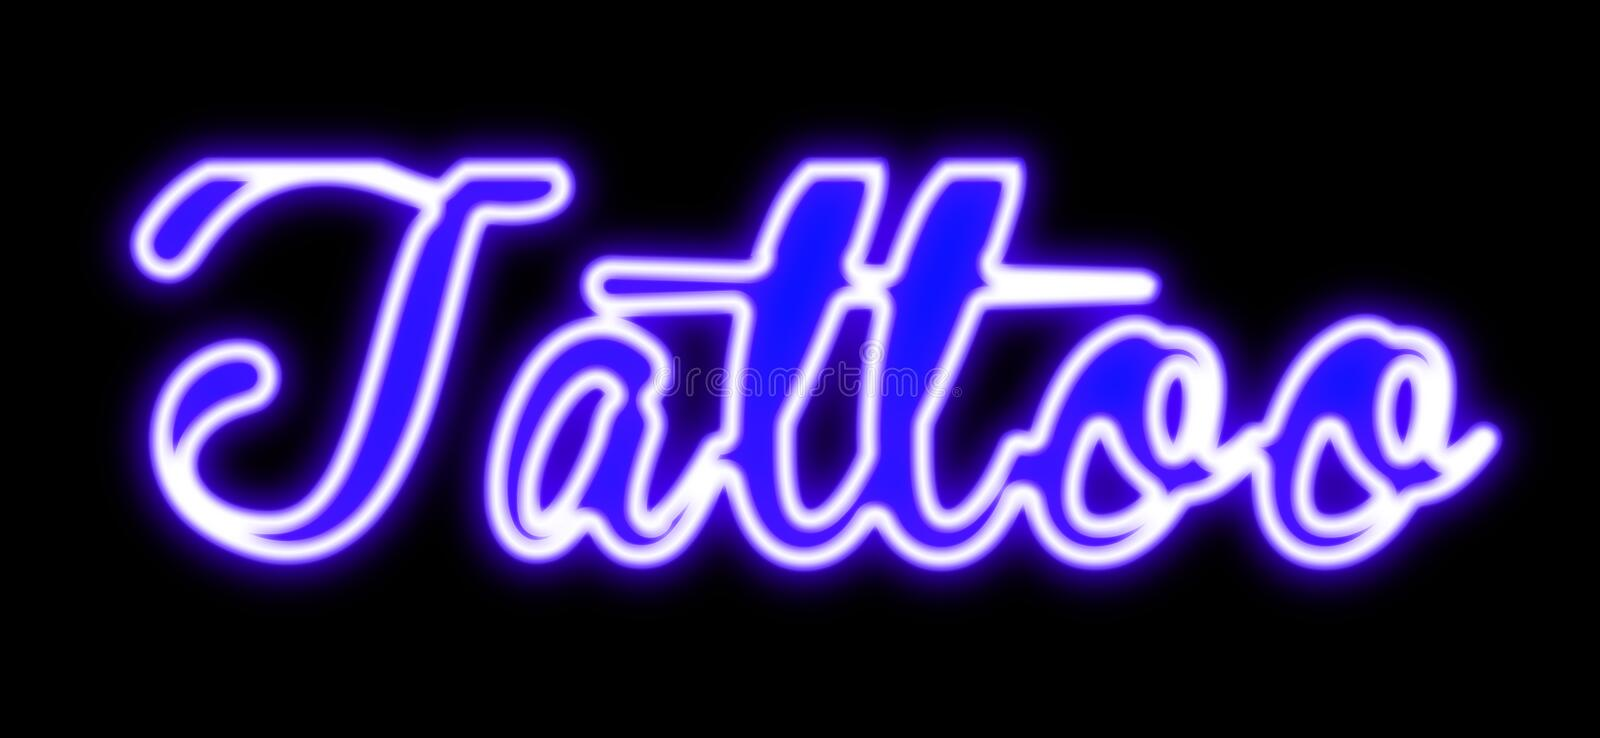 Tattoo neon sign in blue. Neon tattoo sign in shop window stock photo